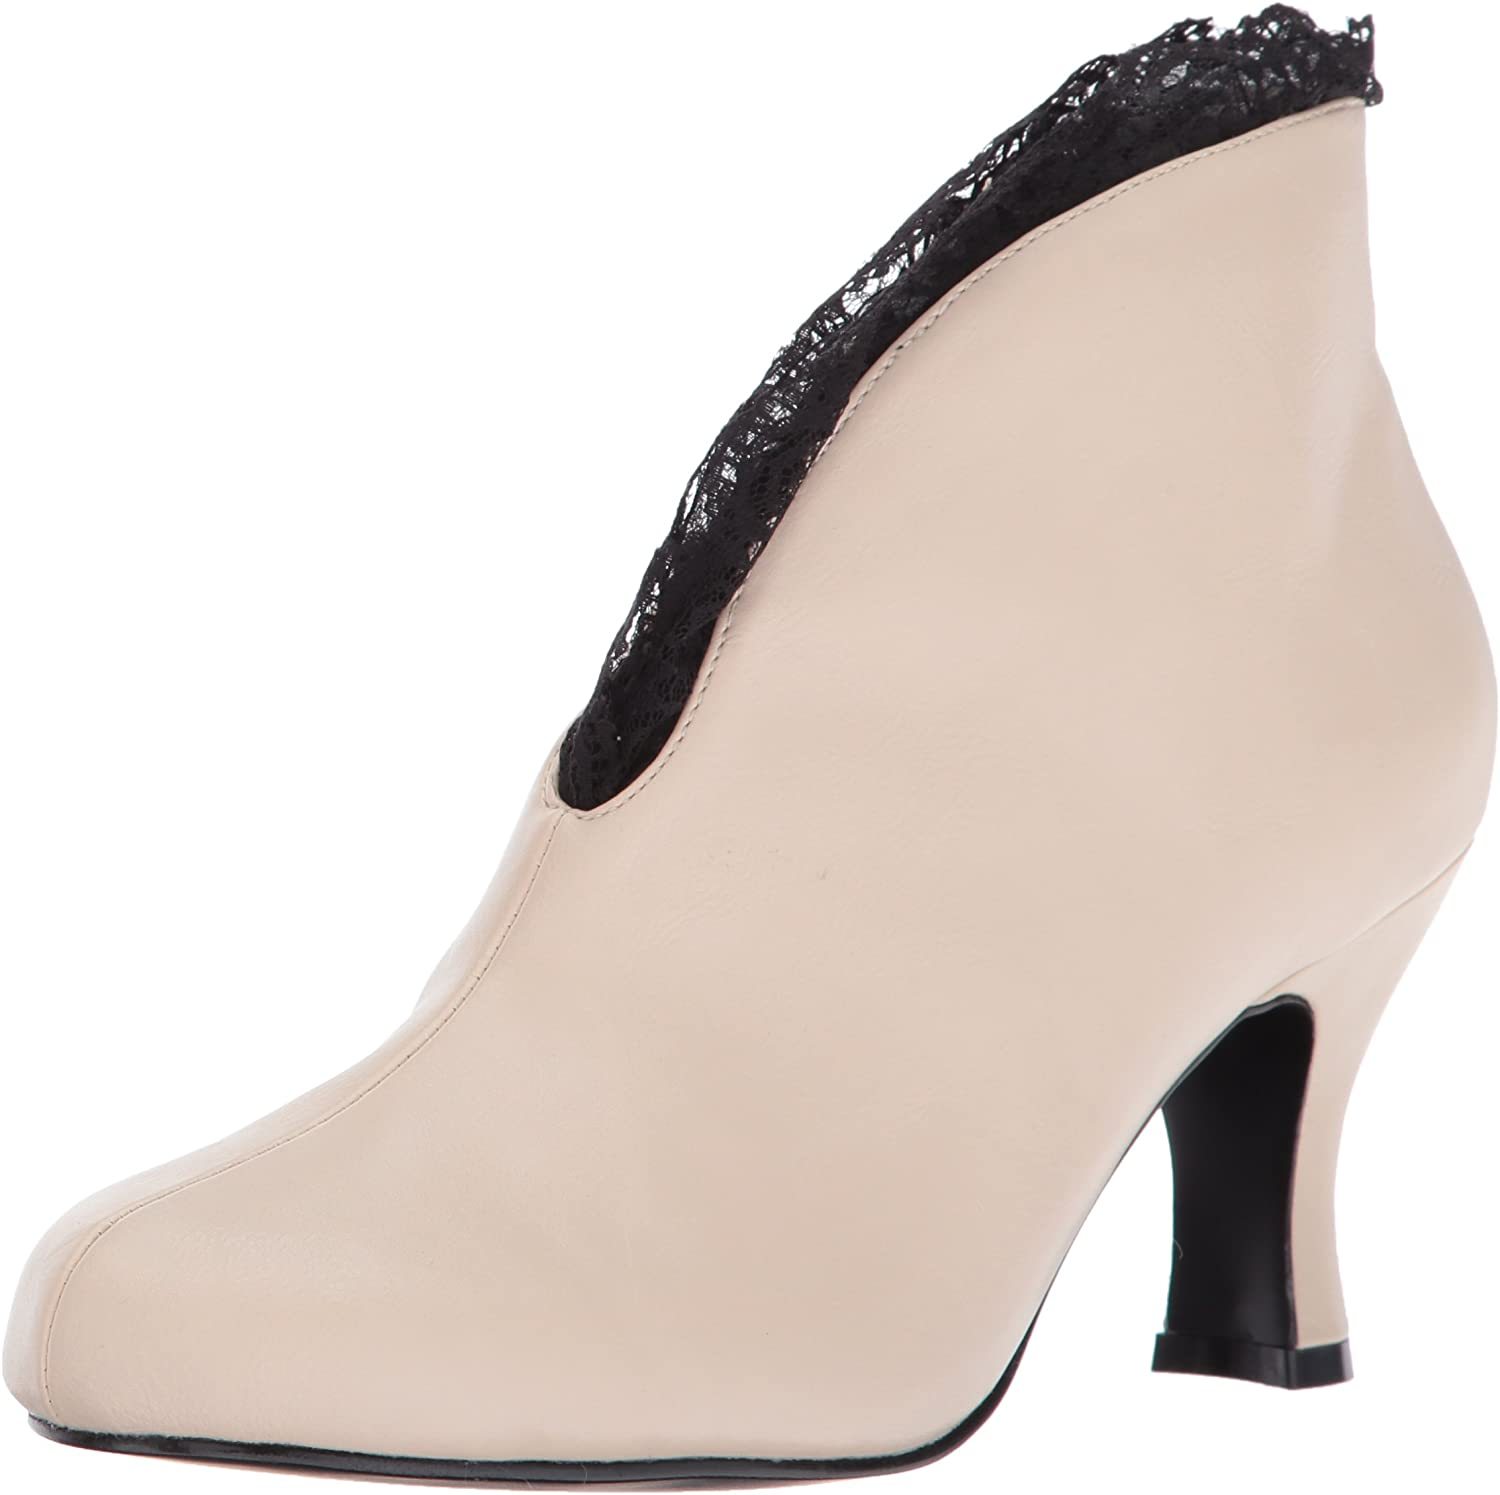 Pleaser Womens Jenna105 crpu-lc Ankle Bootie